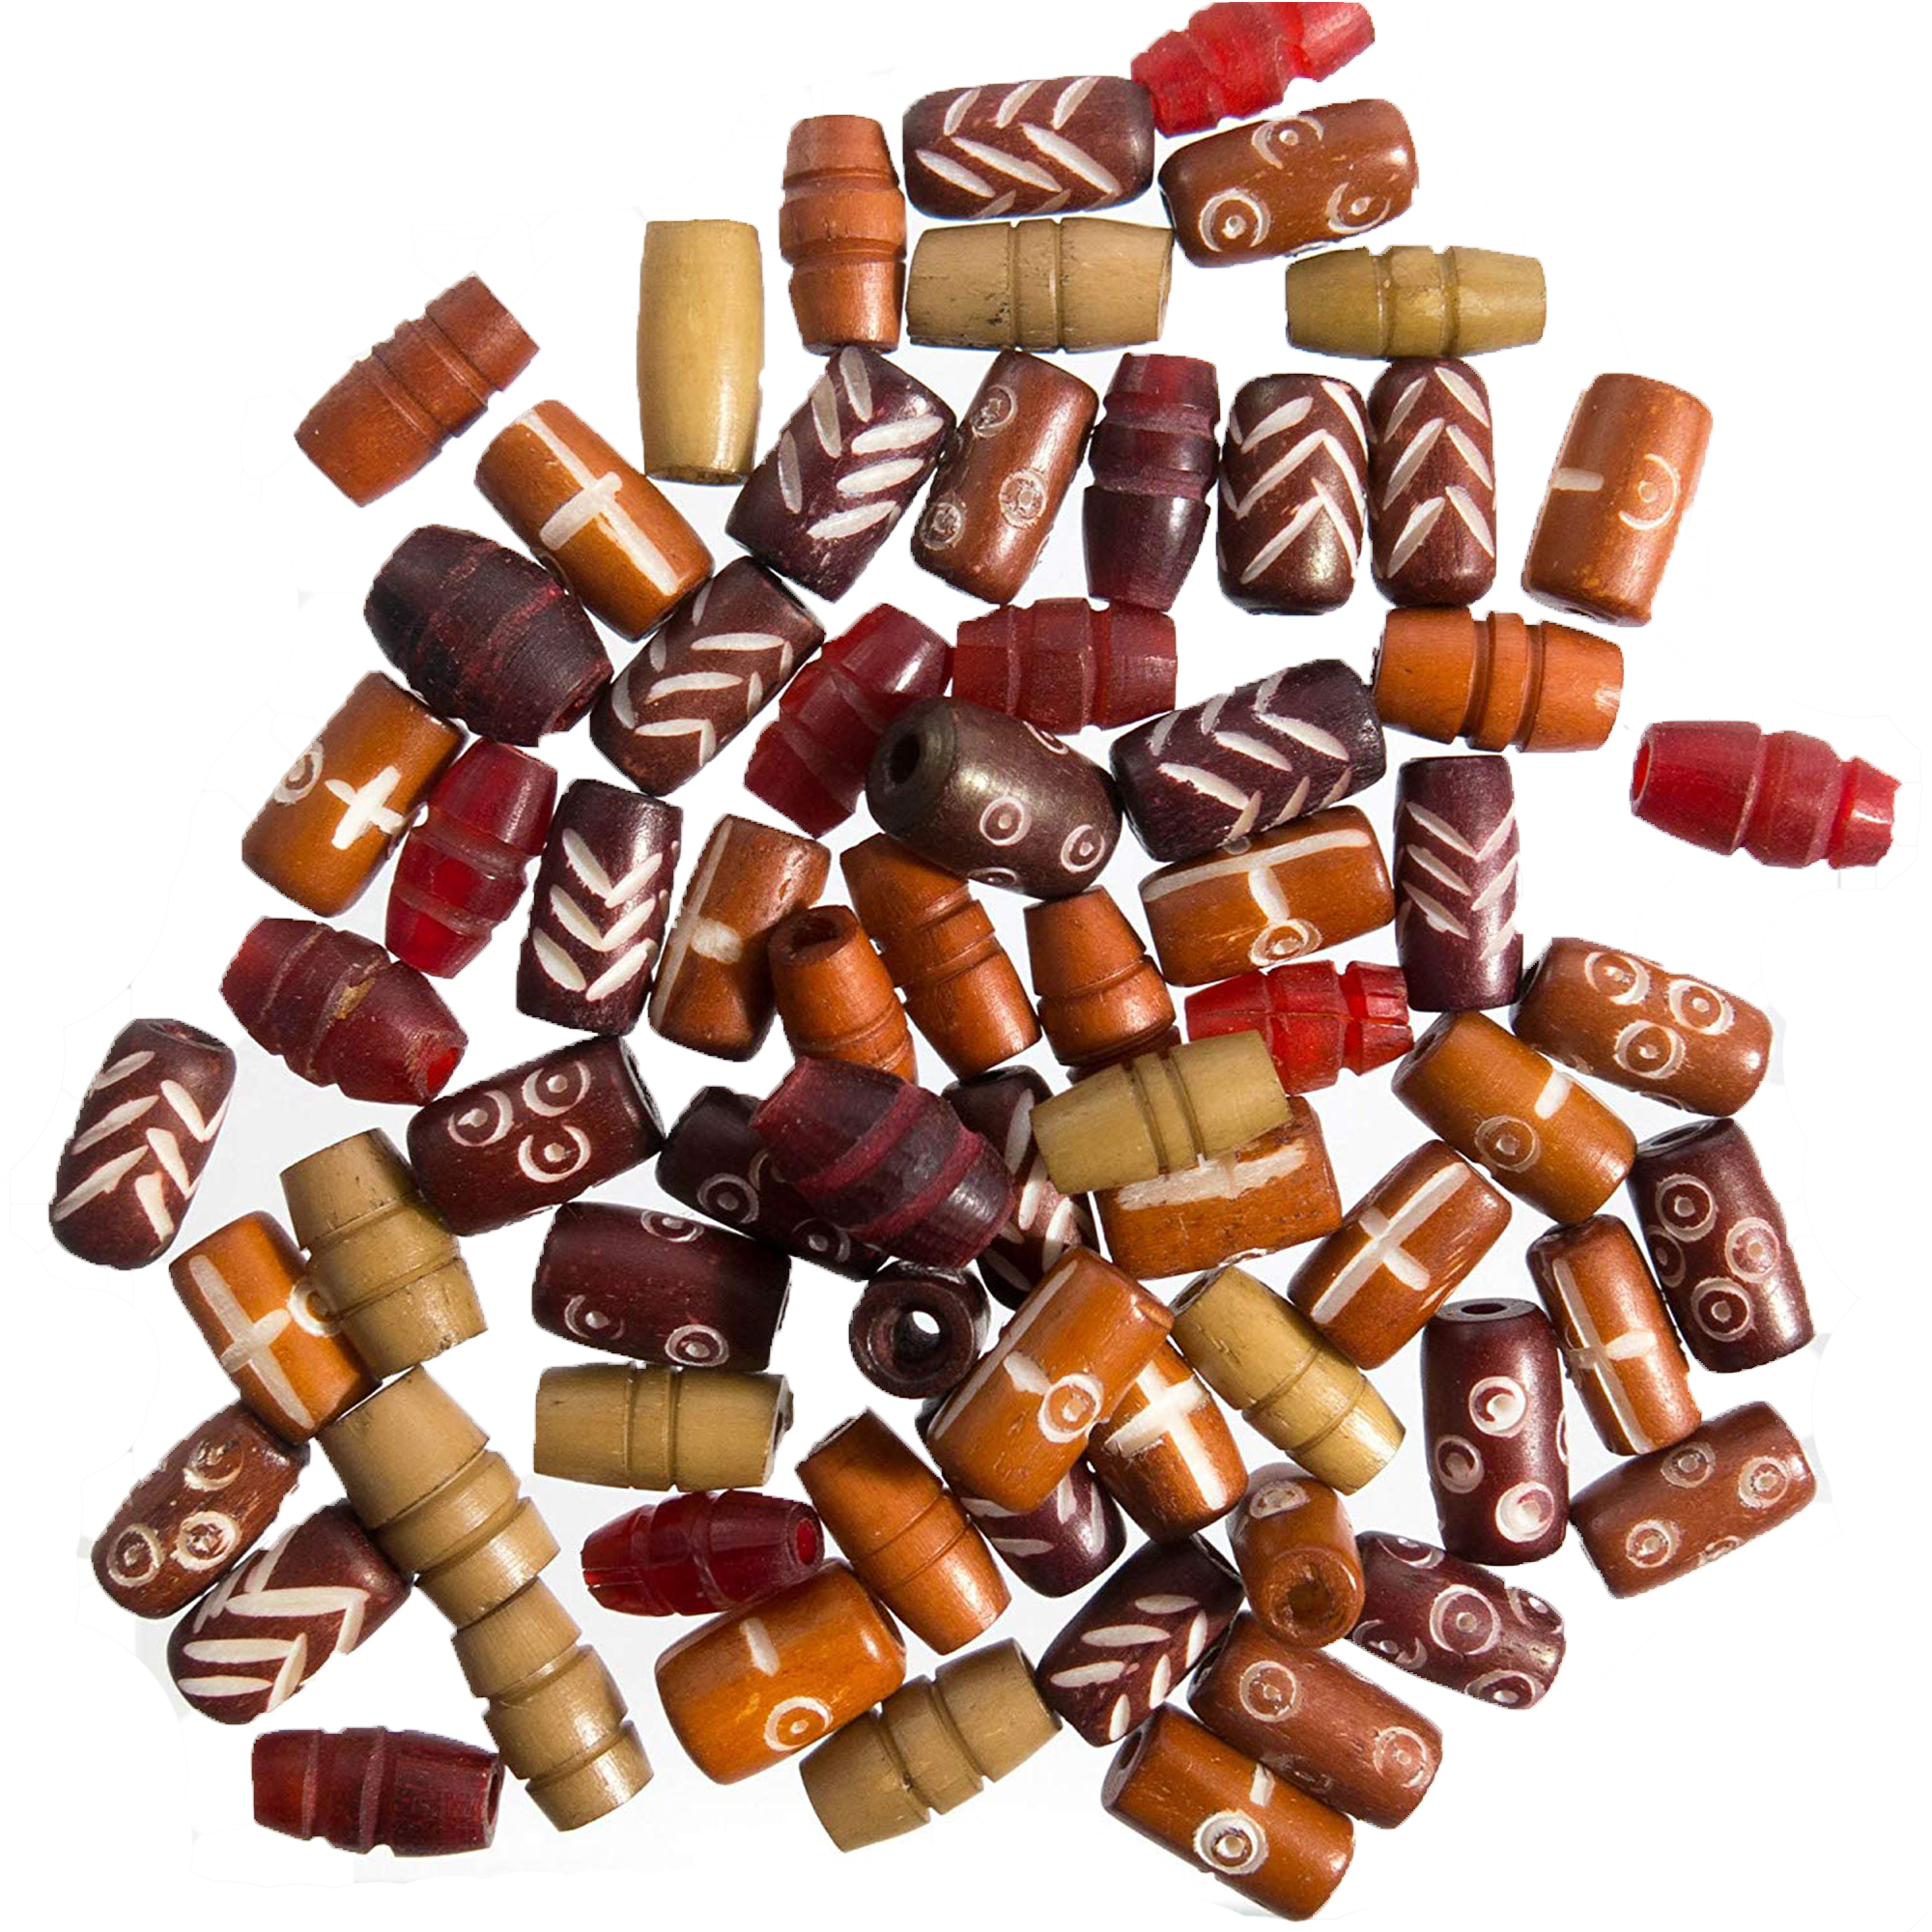 Frogsac 6 Ounces Ox-Bone Beads for DIY Crafts & Jewelry Making  - Approx Count : 225-325 Beads - 3 combos